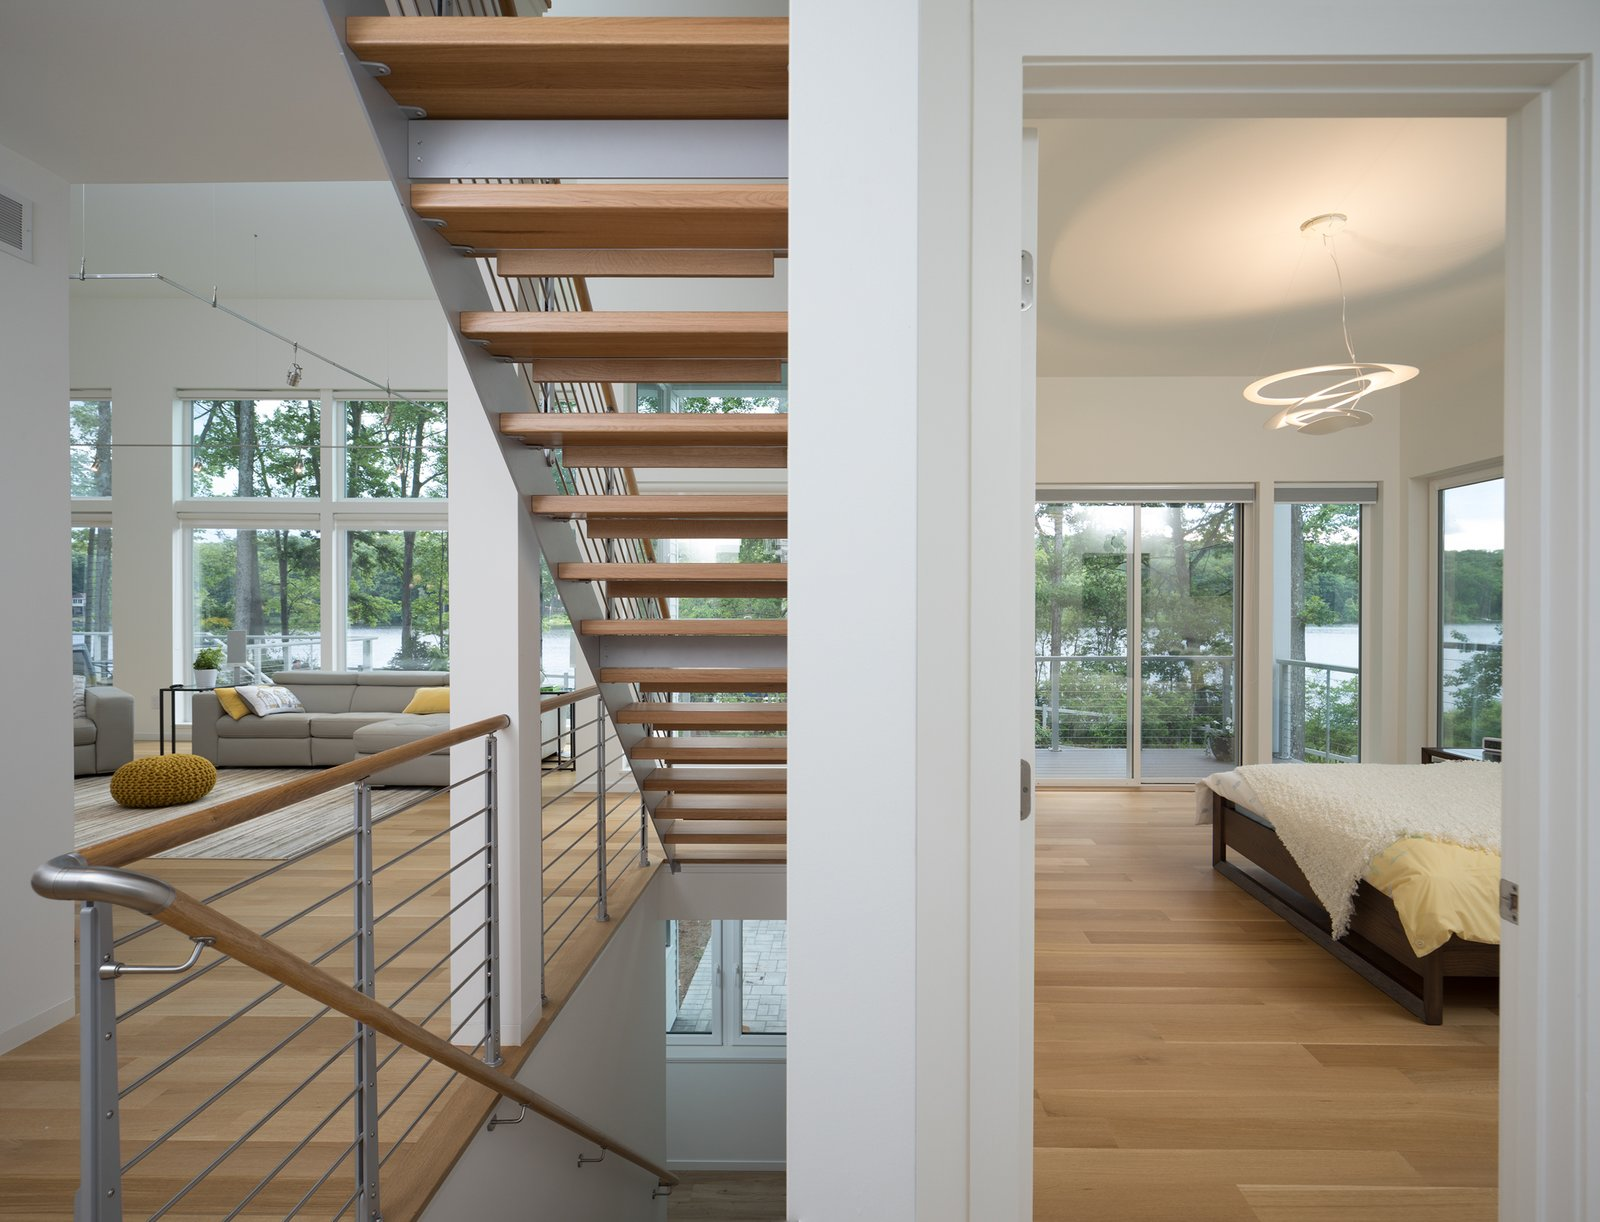 View of living room and master bedroom  Khabensky Residence by Richard Pedranti Architect